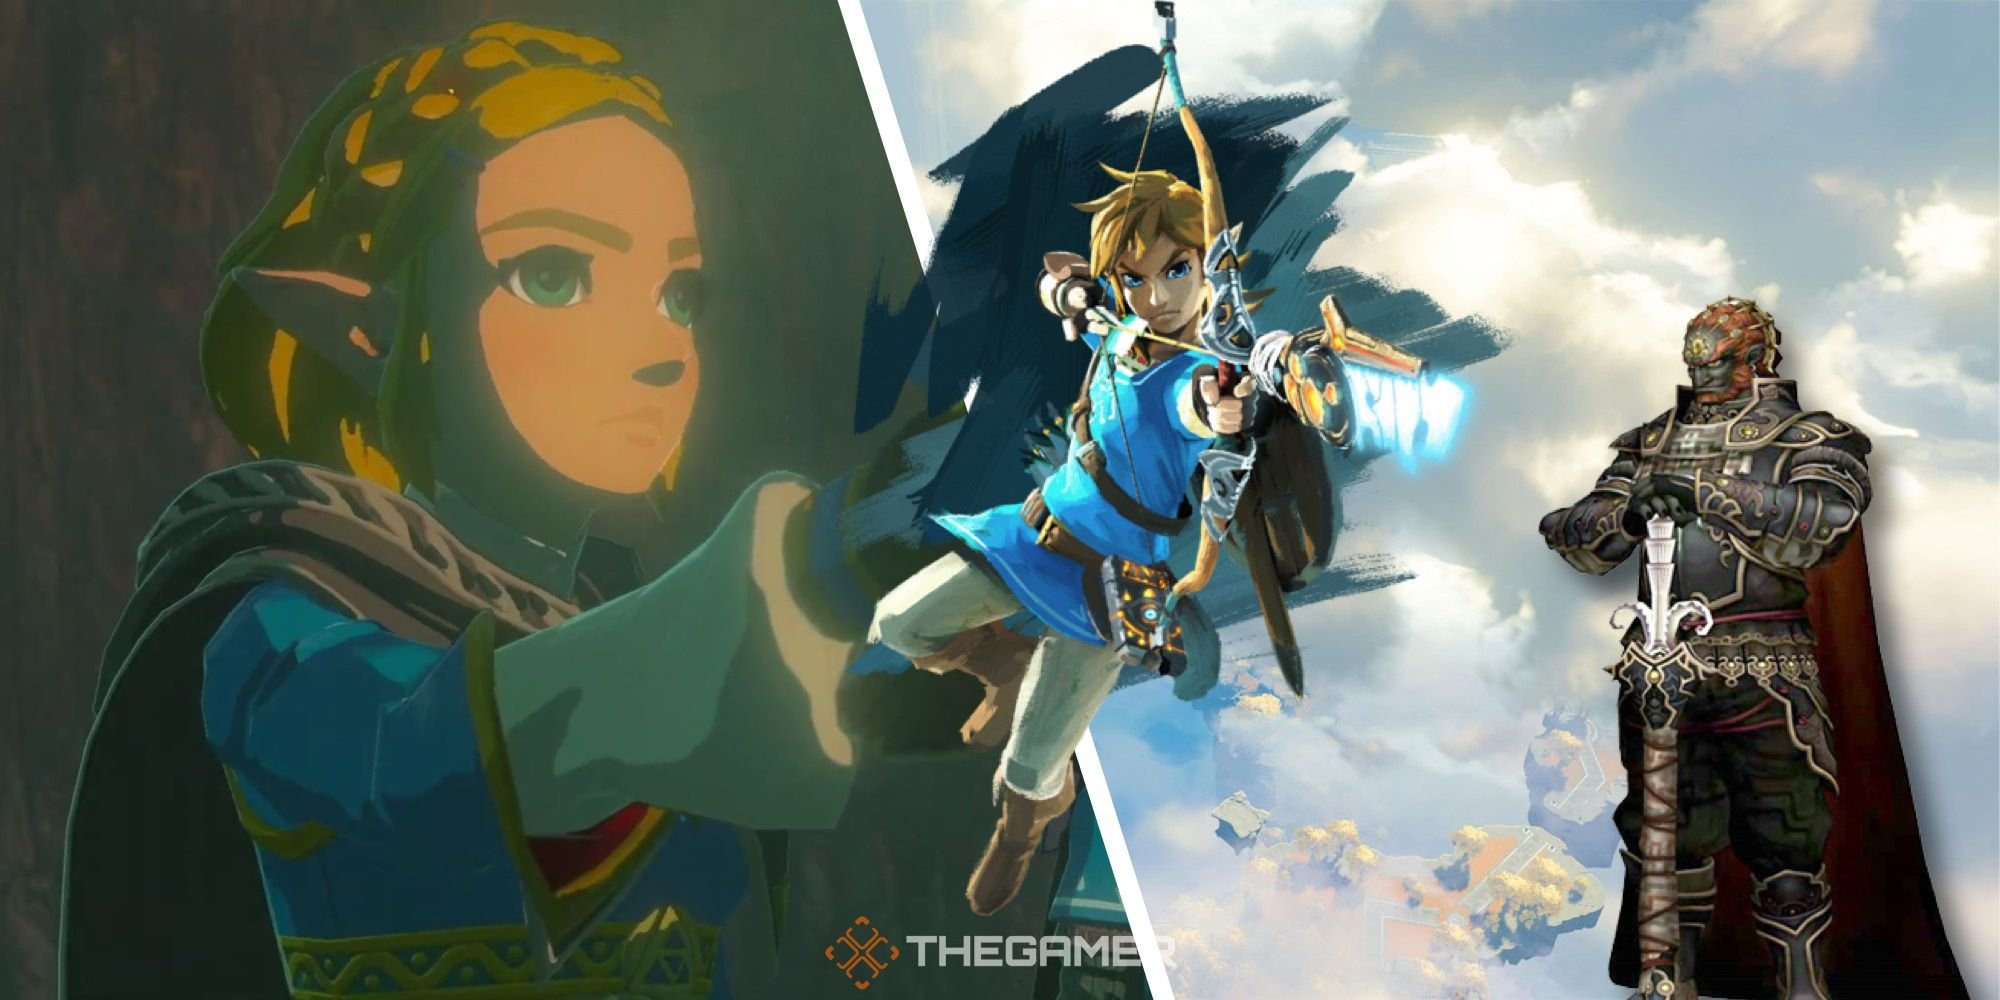 Breath Of The Wild 2 Could Have Playable Link, Ganon, And Zelda